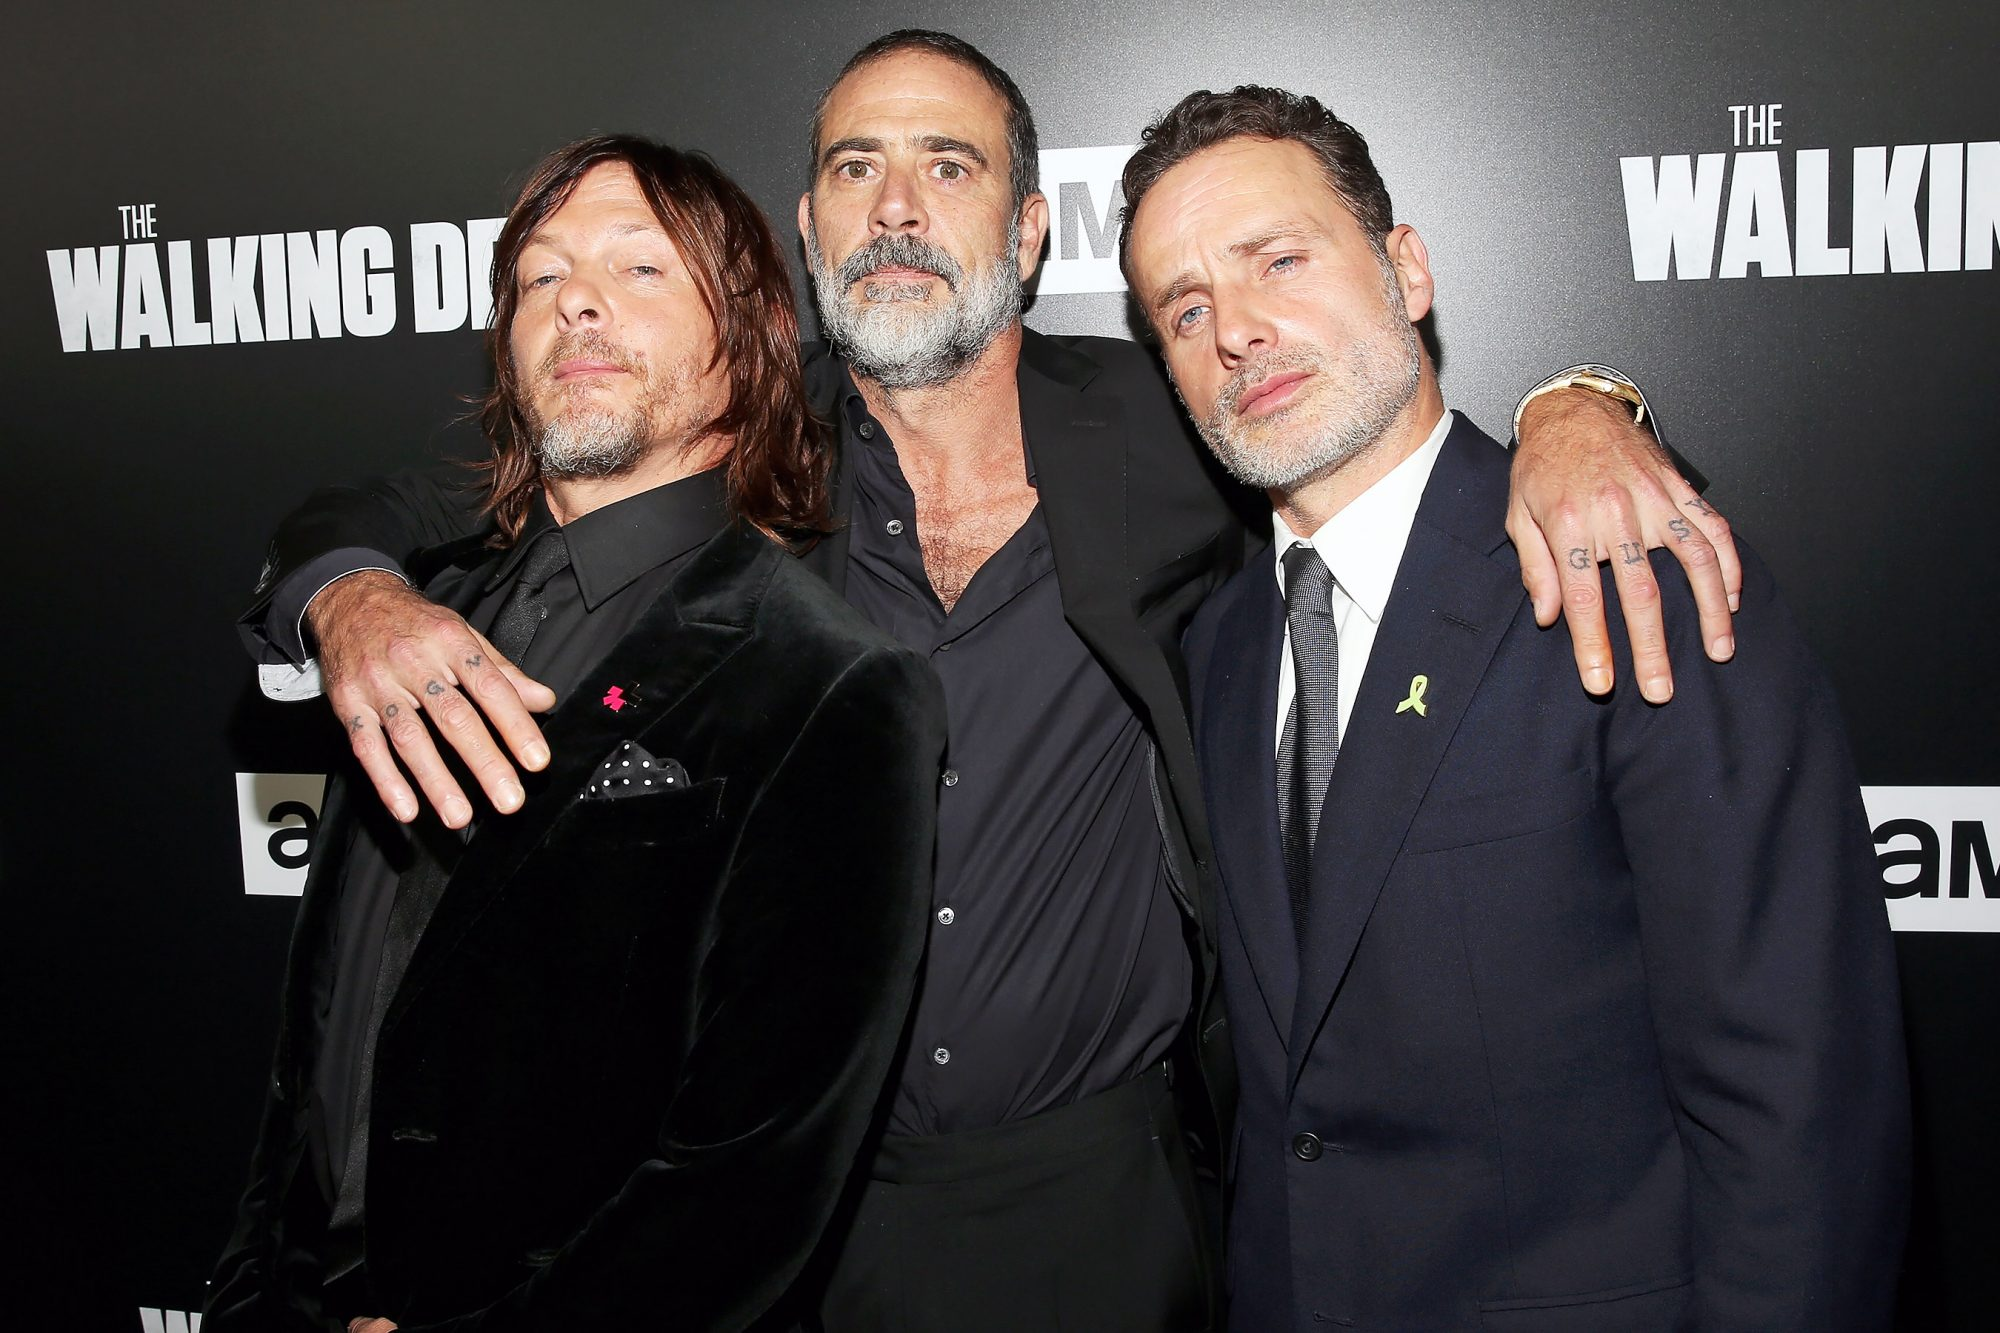 The Walking Dead Premiere And After Party